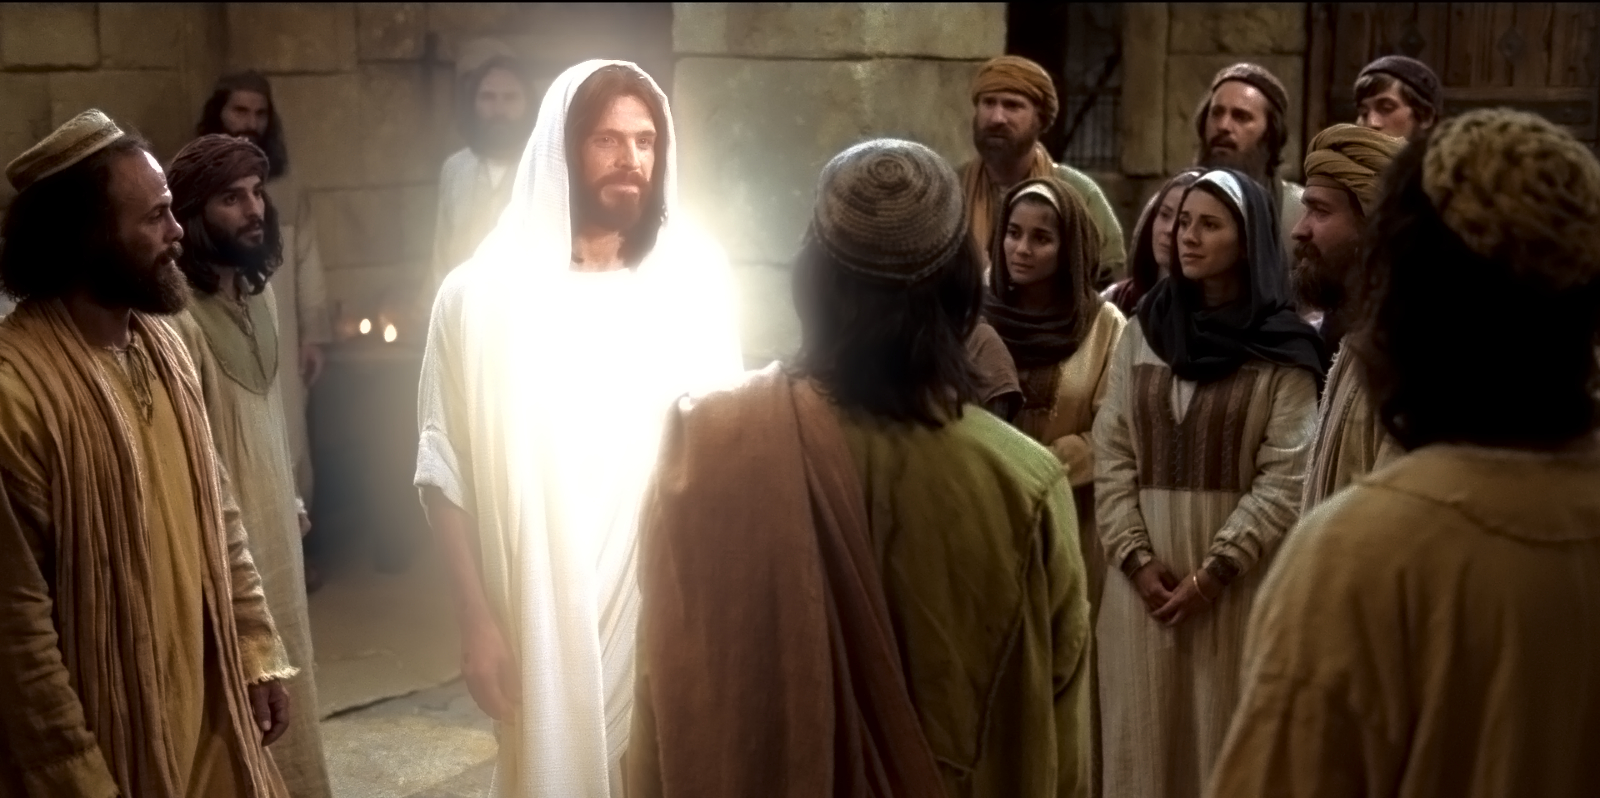 Jesus Christ, now resurrected, approaches his apostles and others in this scene from a Bible Video.